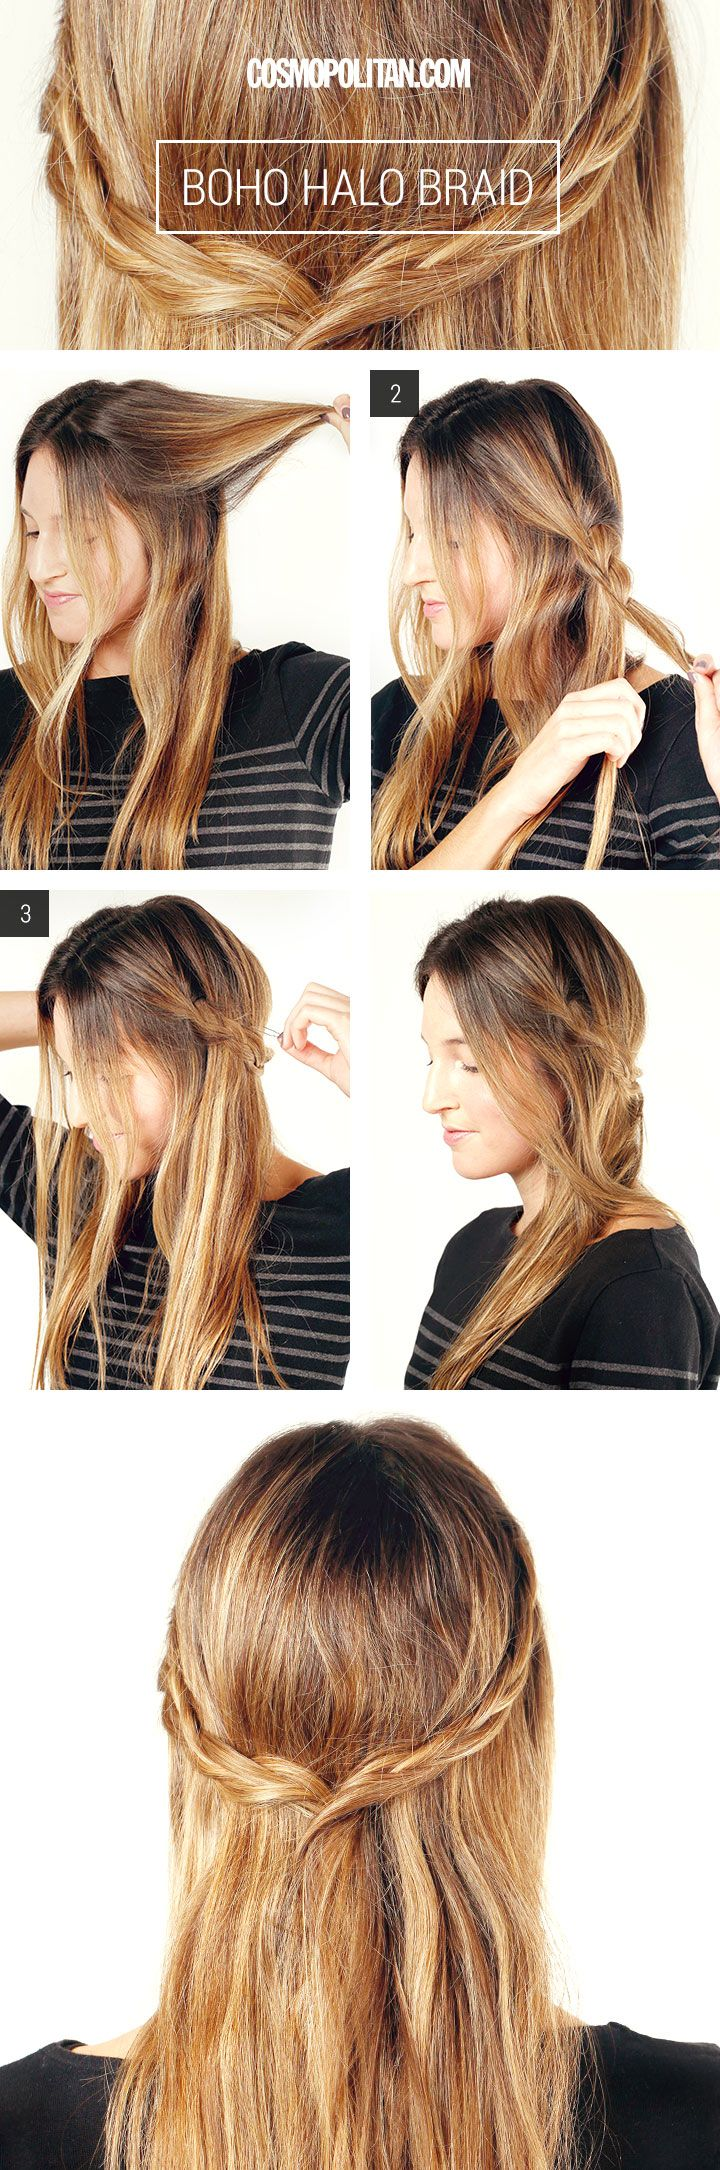 How to create the easiest braided hairstyle ever halo braid braid